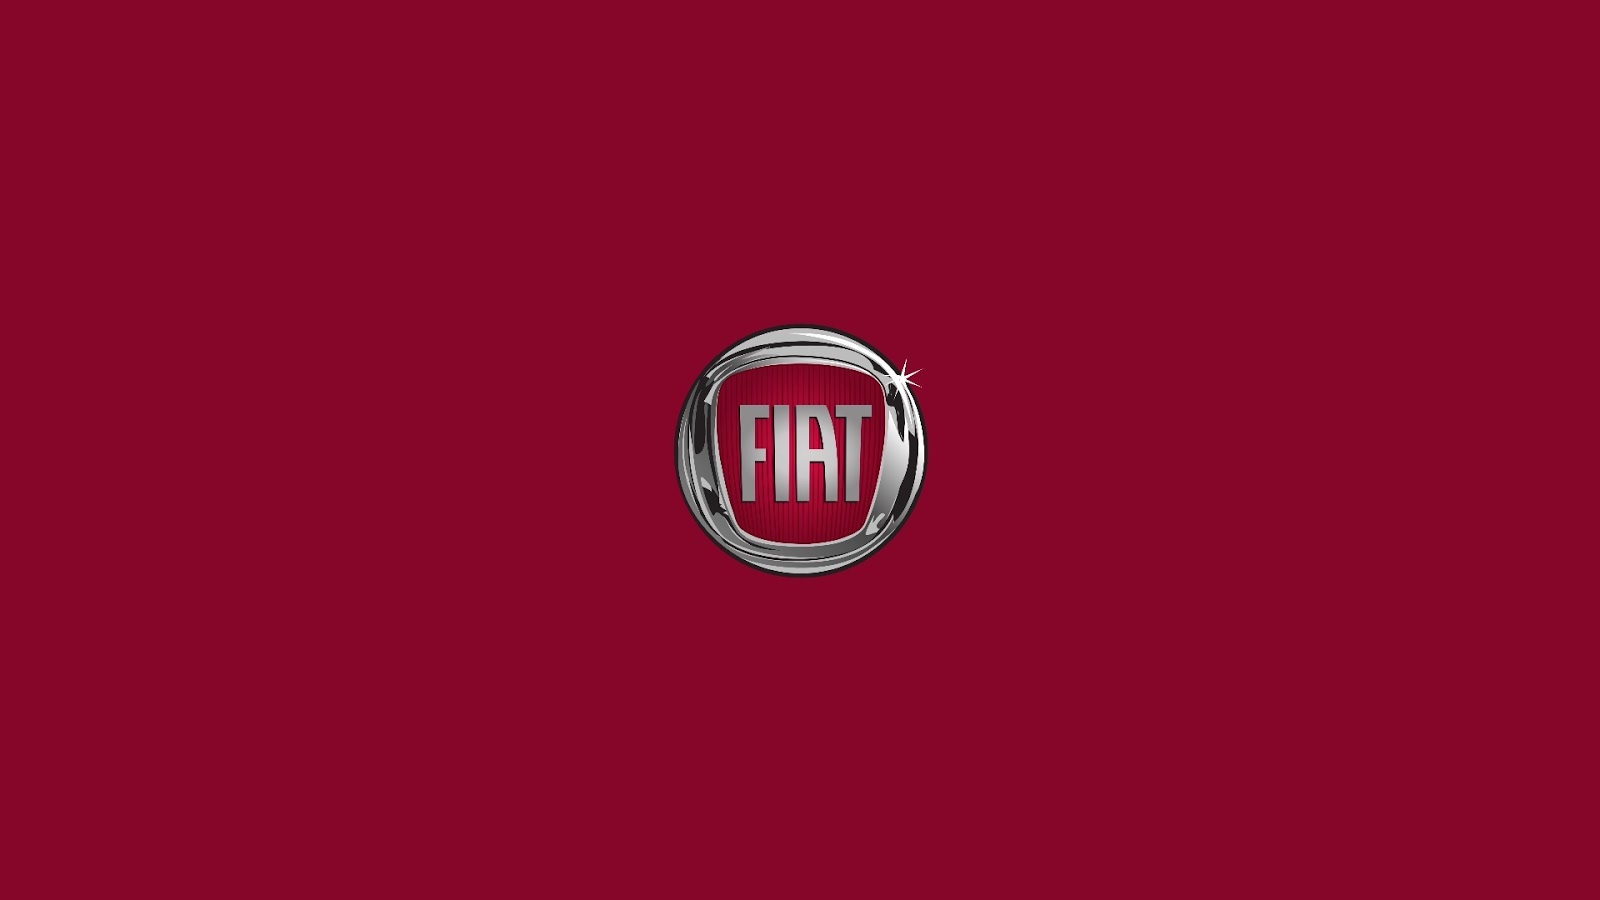 Fiat Logo Wallpapers Full HD Pictures 1600x900